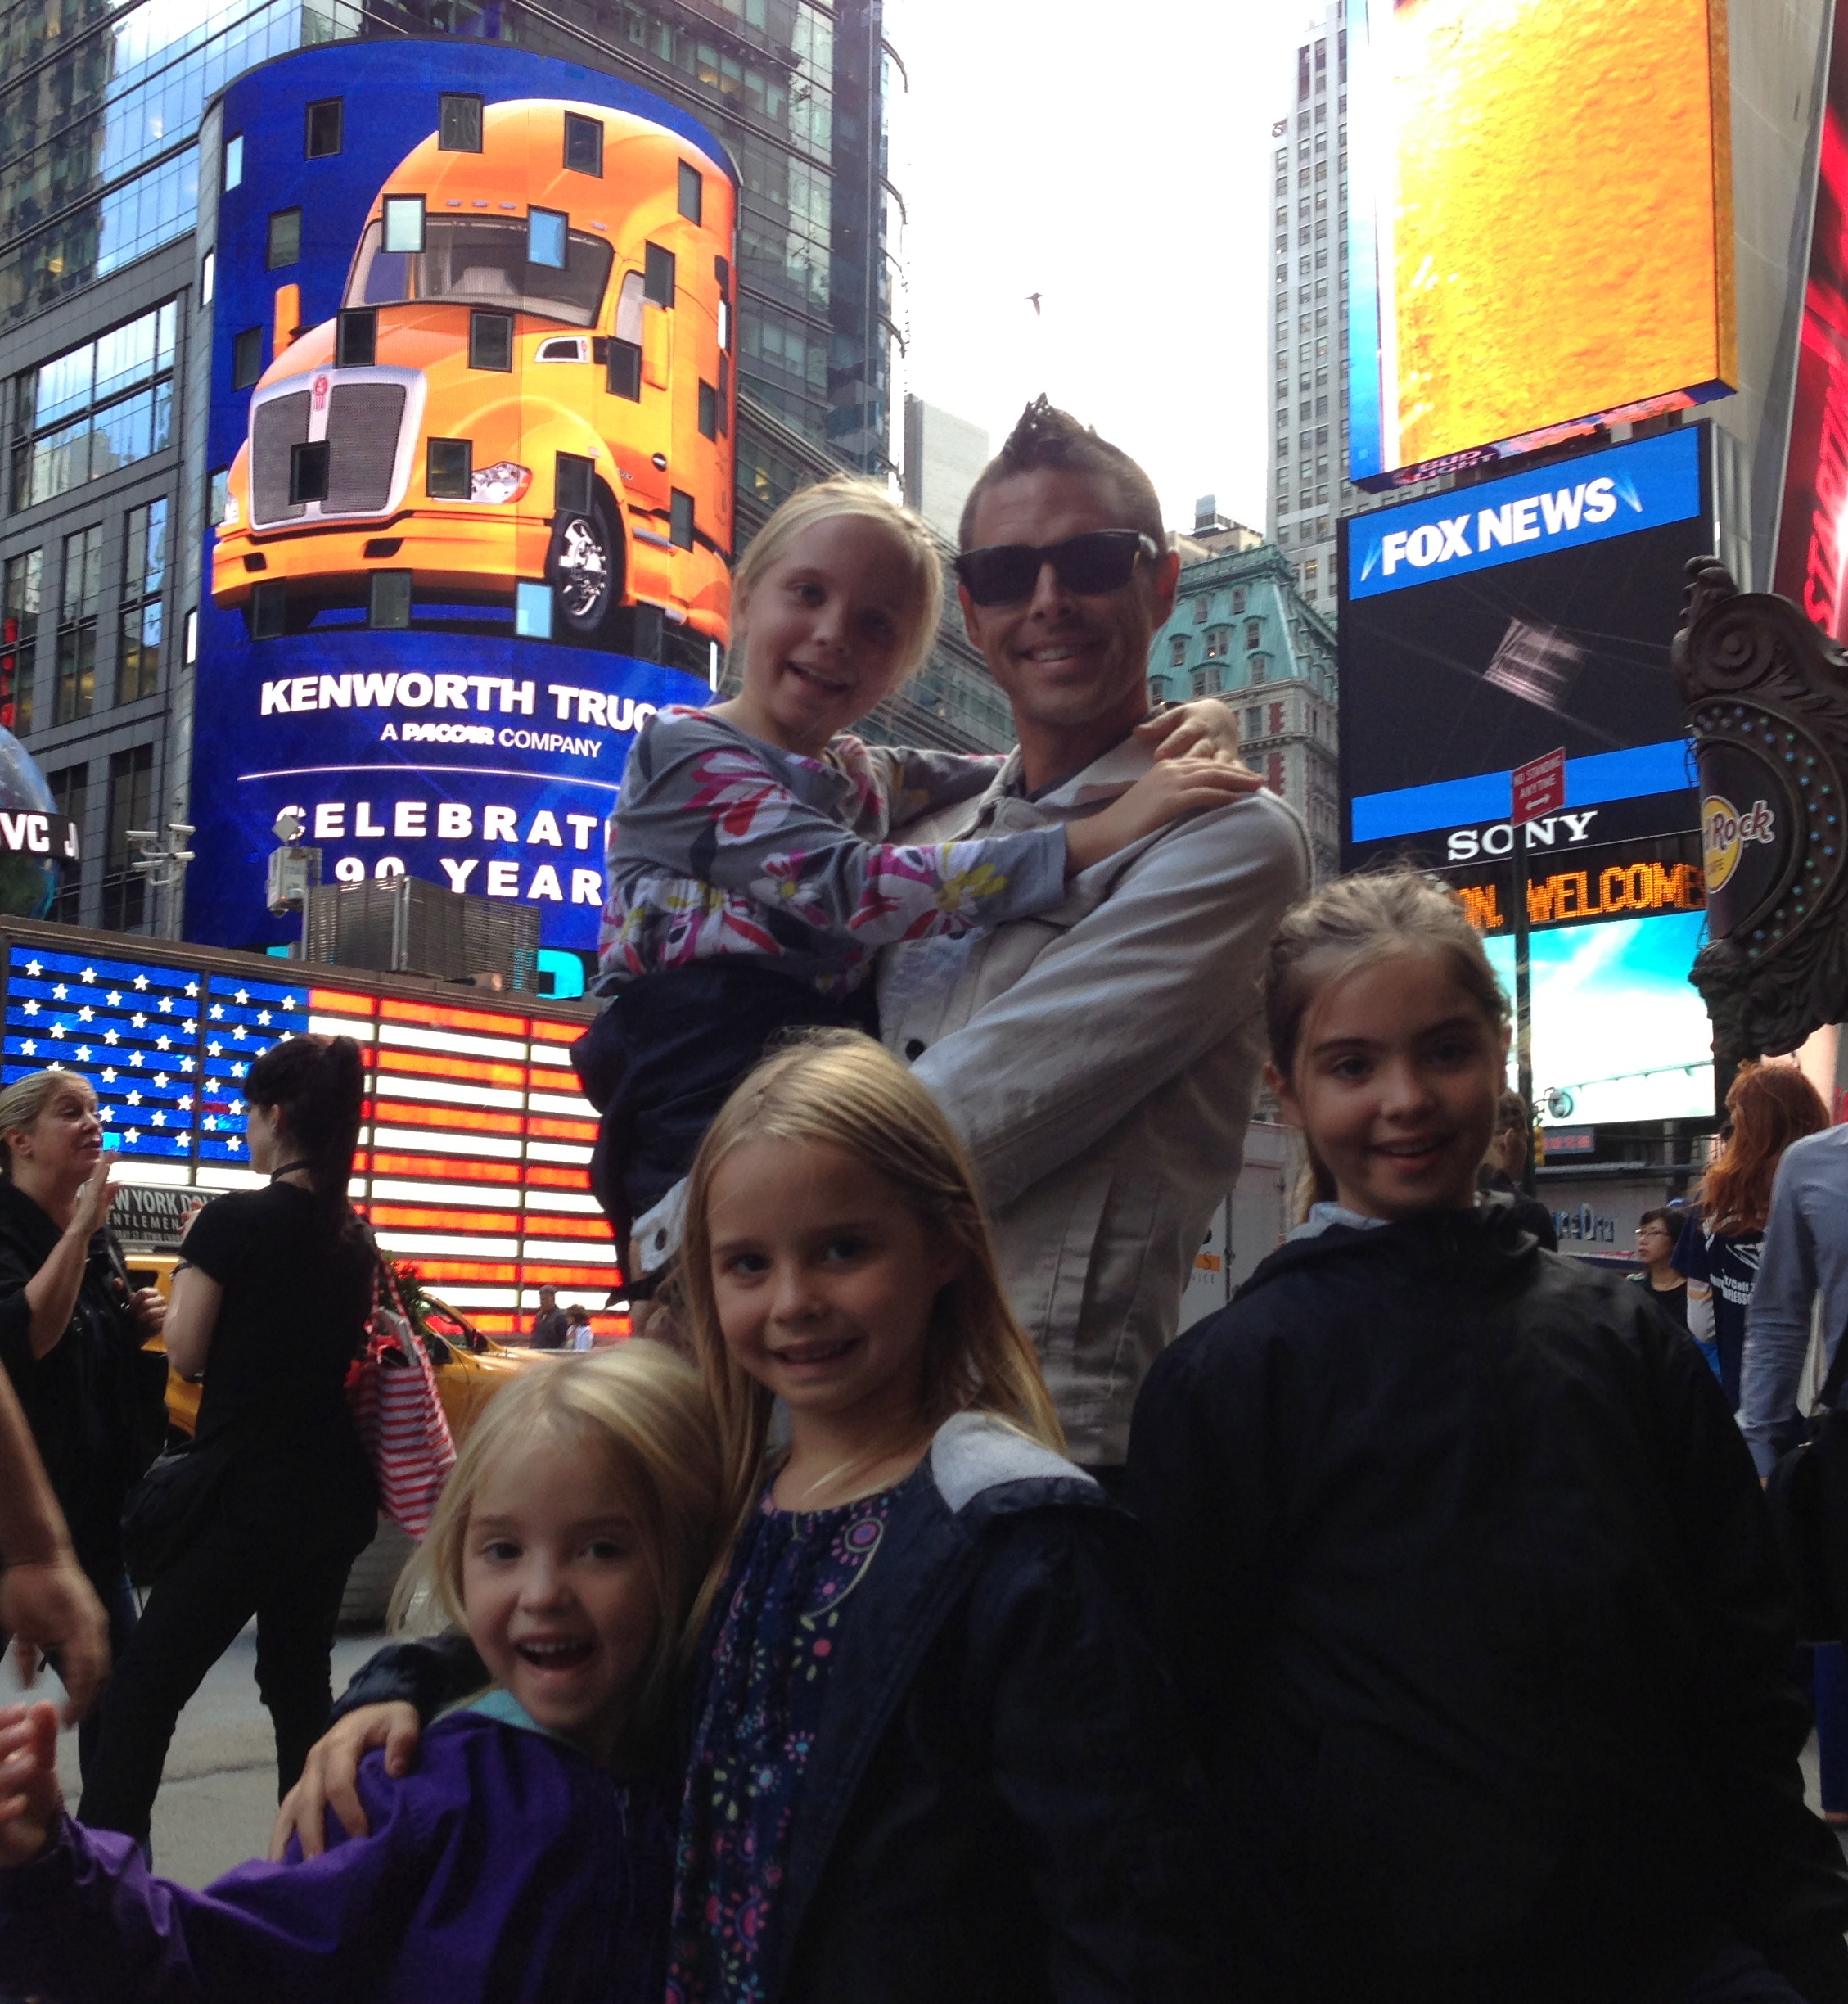 I think we're the only family in Times Square.